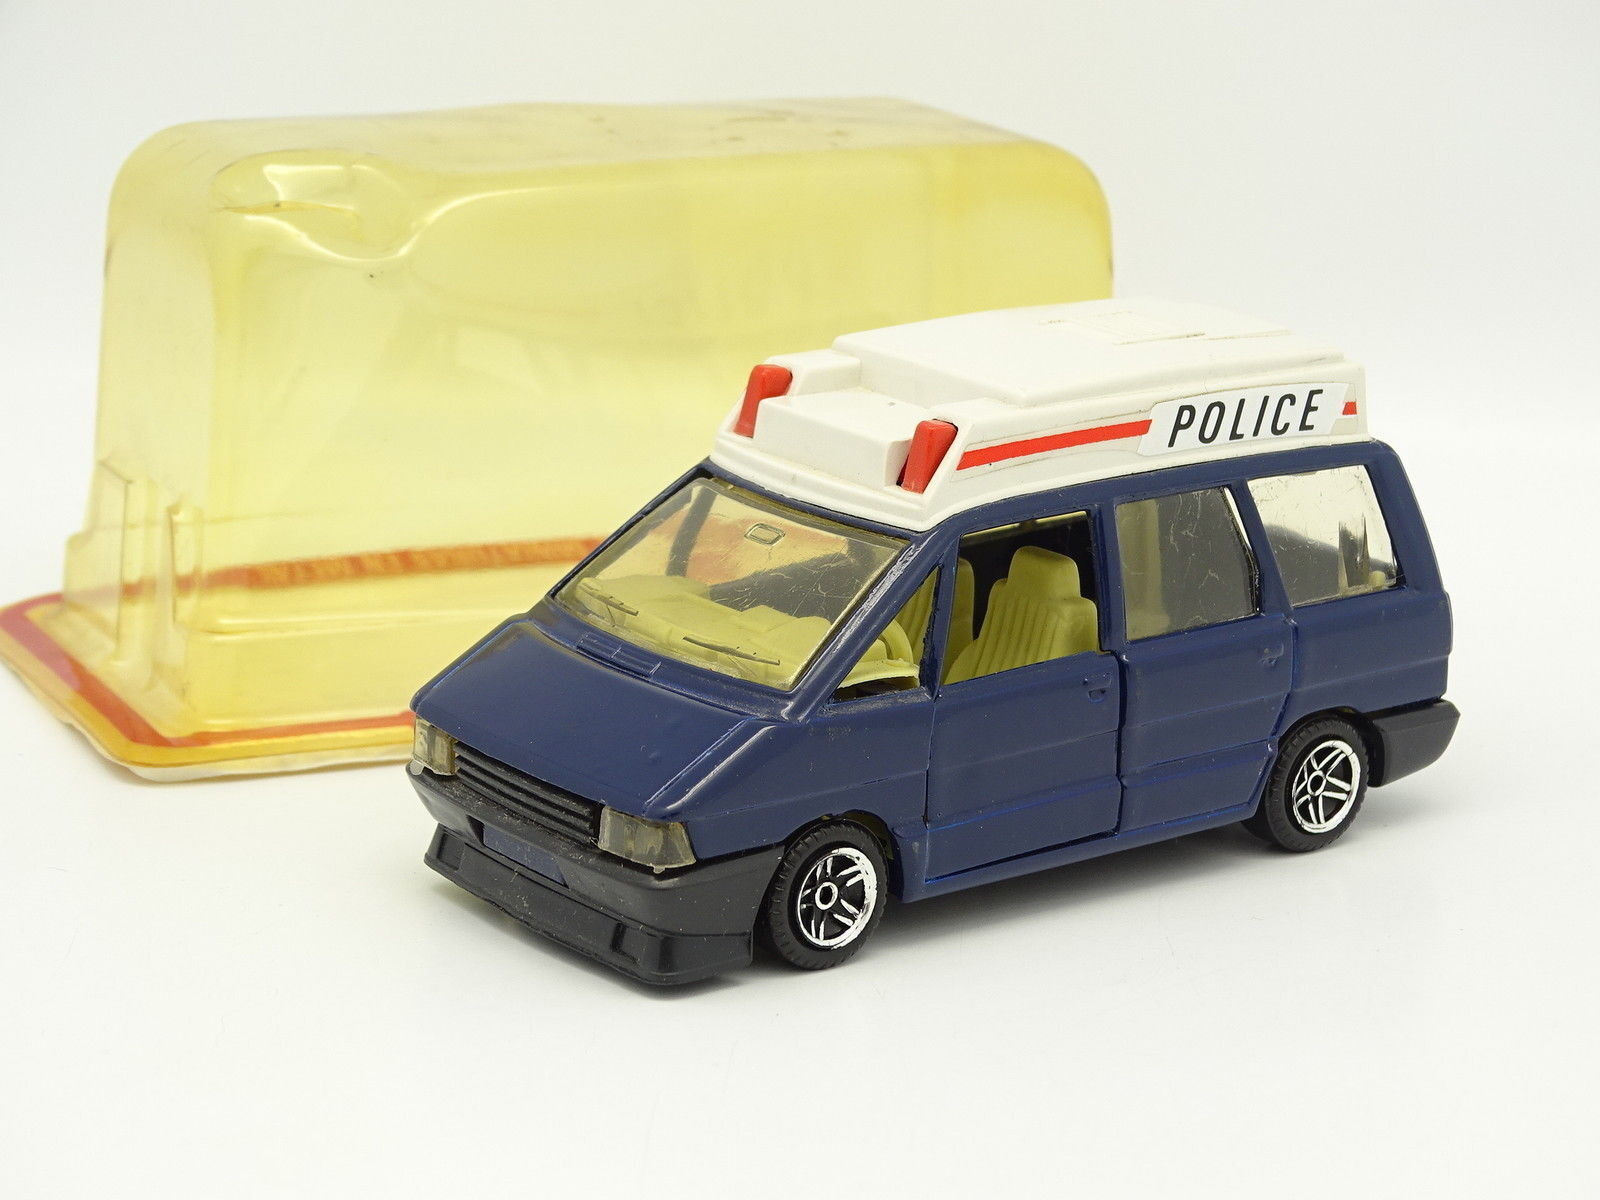 Guisval 1 43 - Renault Espace I Police